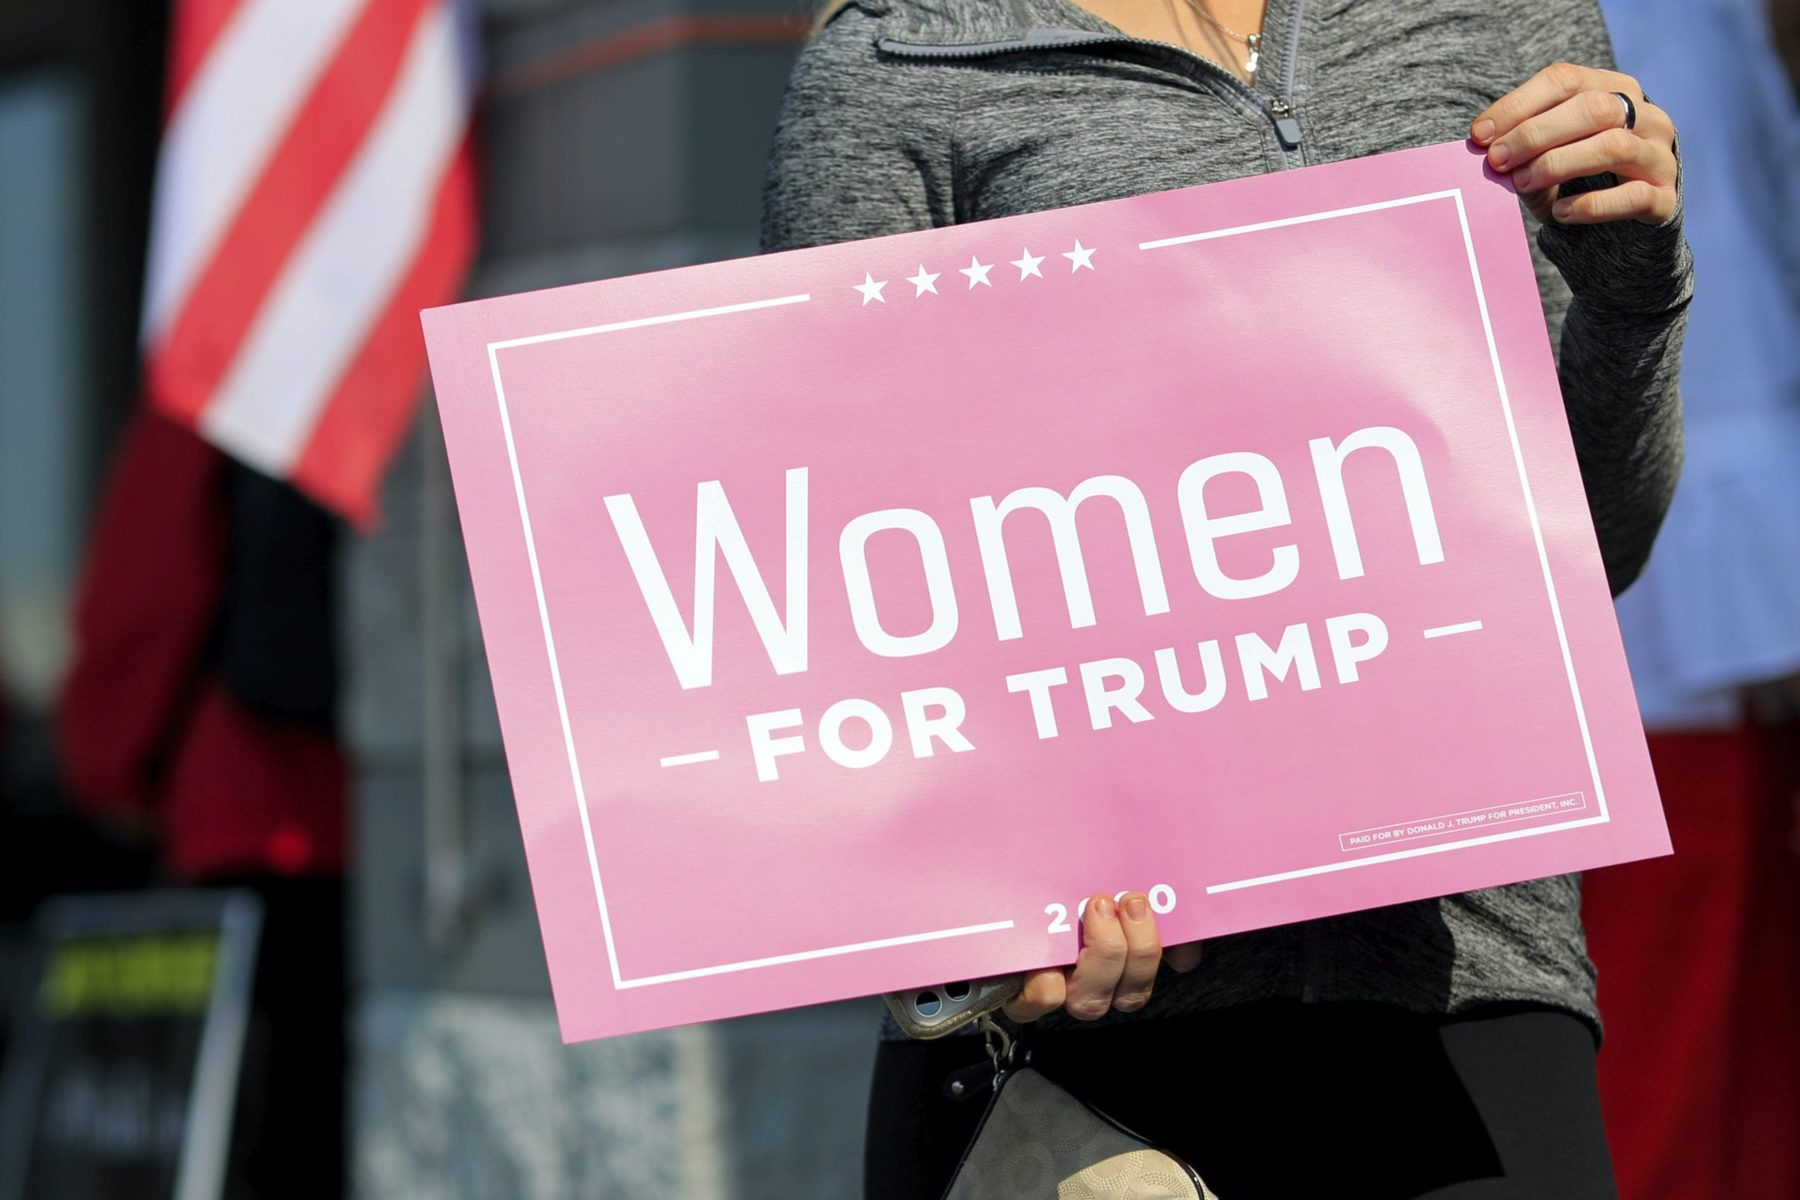 A voter holds a sign in support of Women For Trump outside the Hamilton County Board of Elections as people arrive to participate in early voting, Tuesday, Oct. 6, 2020, in Norwood, Ohio.